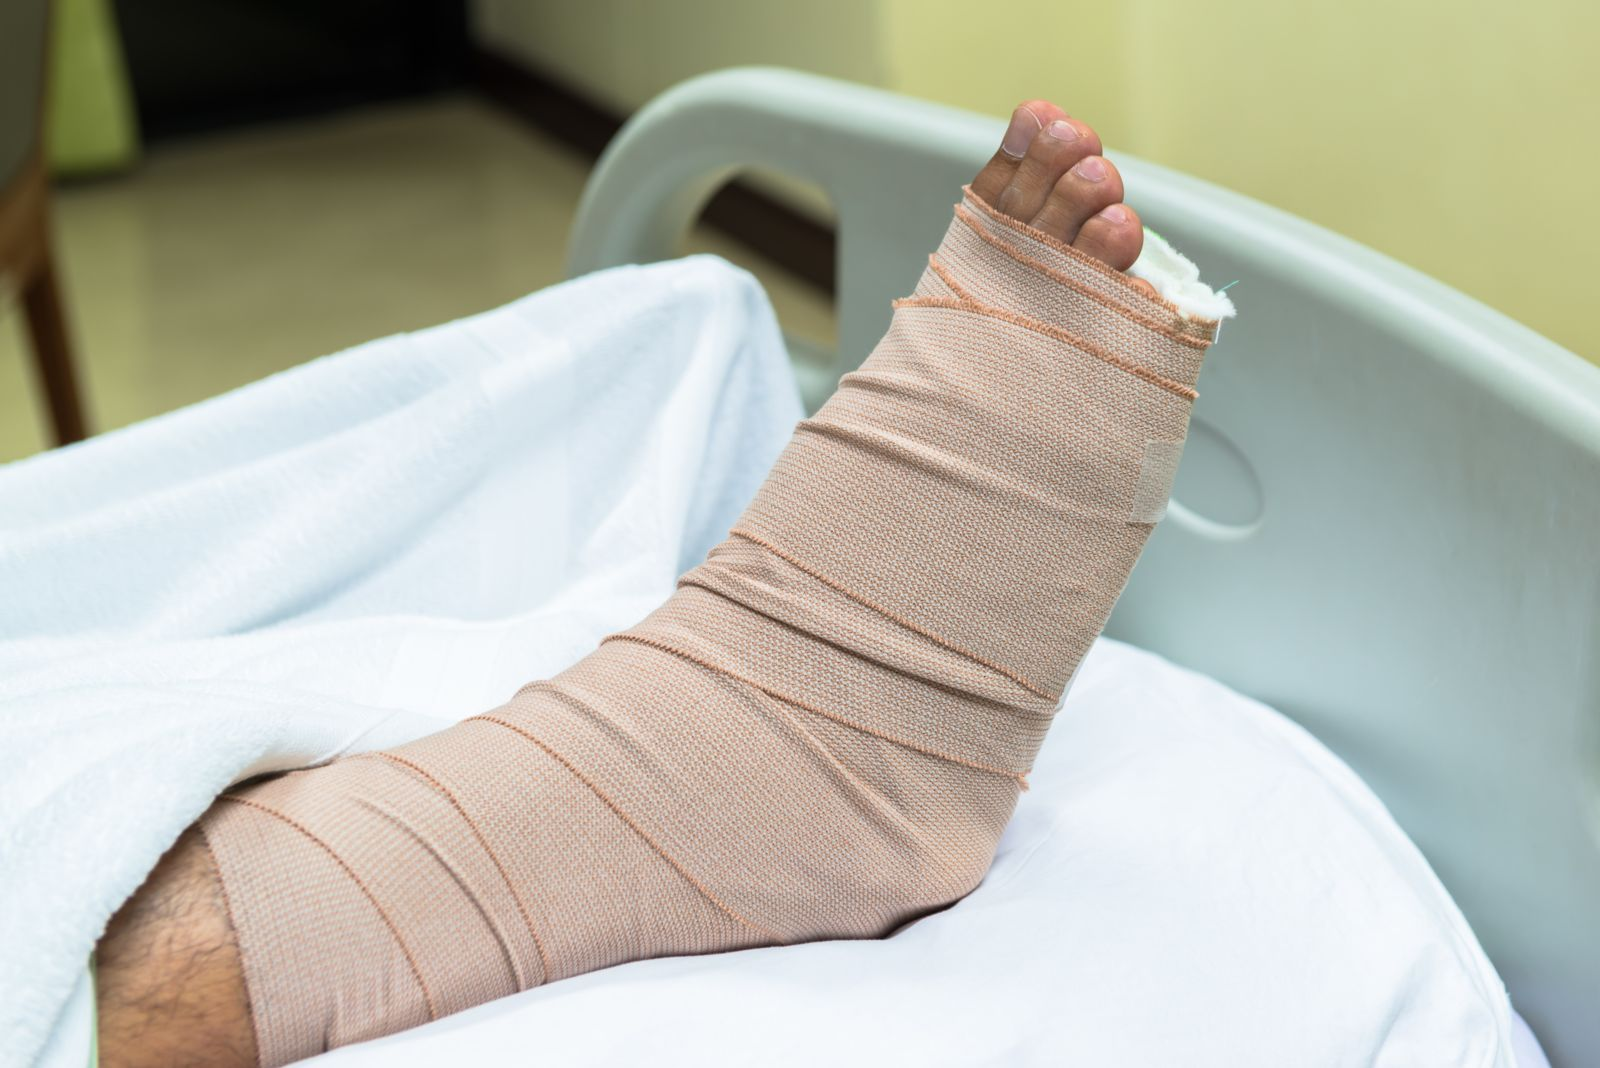 Foot elevated in splint with ace bandage